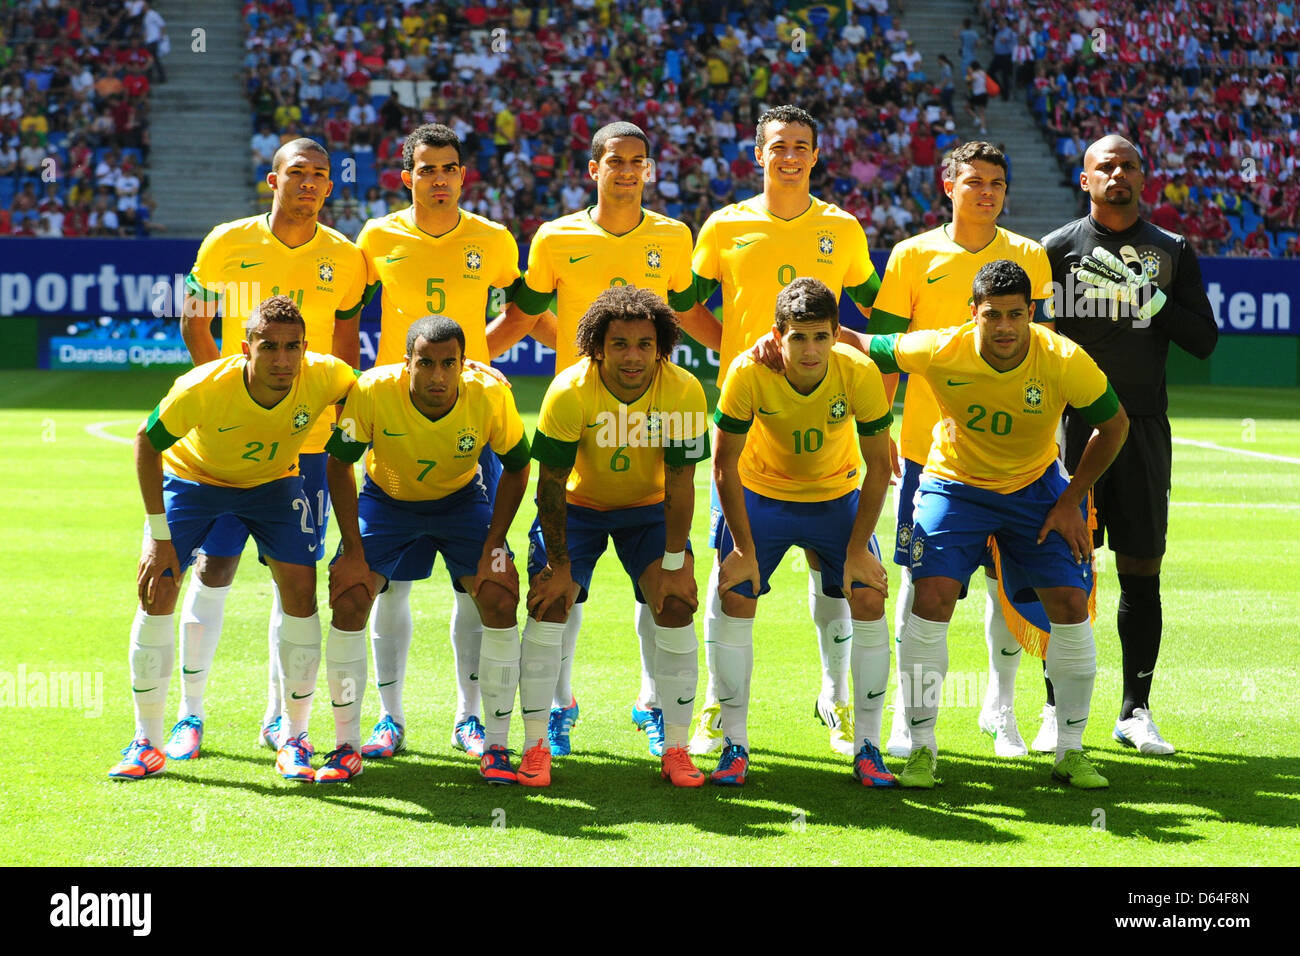 776c7424c02 The Brazilian national soccer team poses for a group photo prior to the  international soccer match between Brazil and Denmark at Imtech Arena in  Hamburg, ...